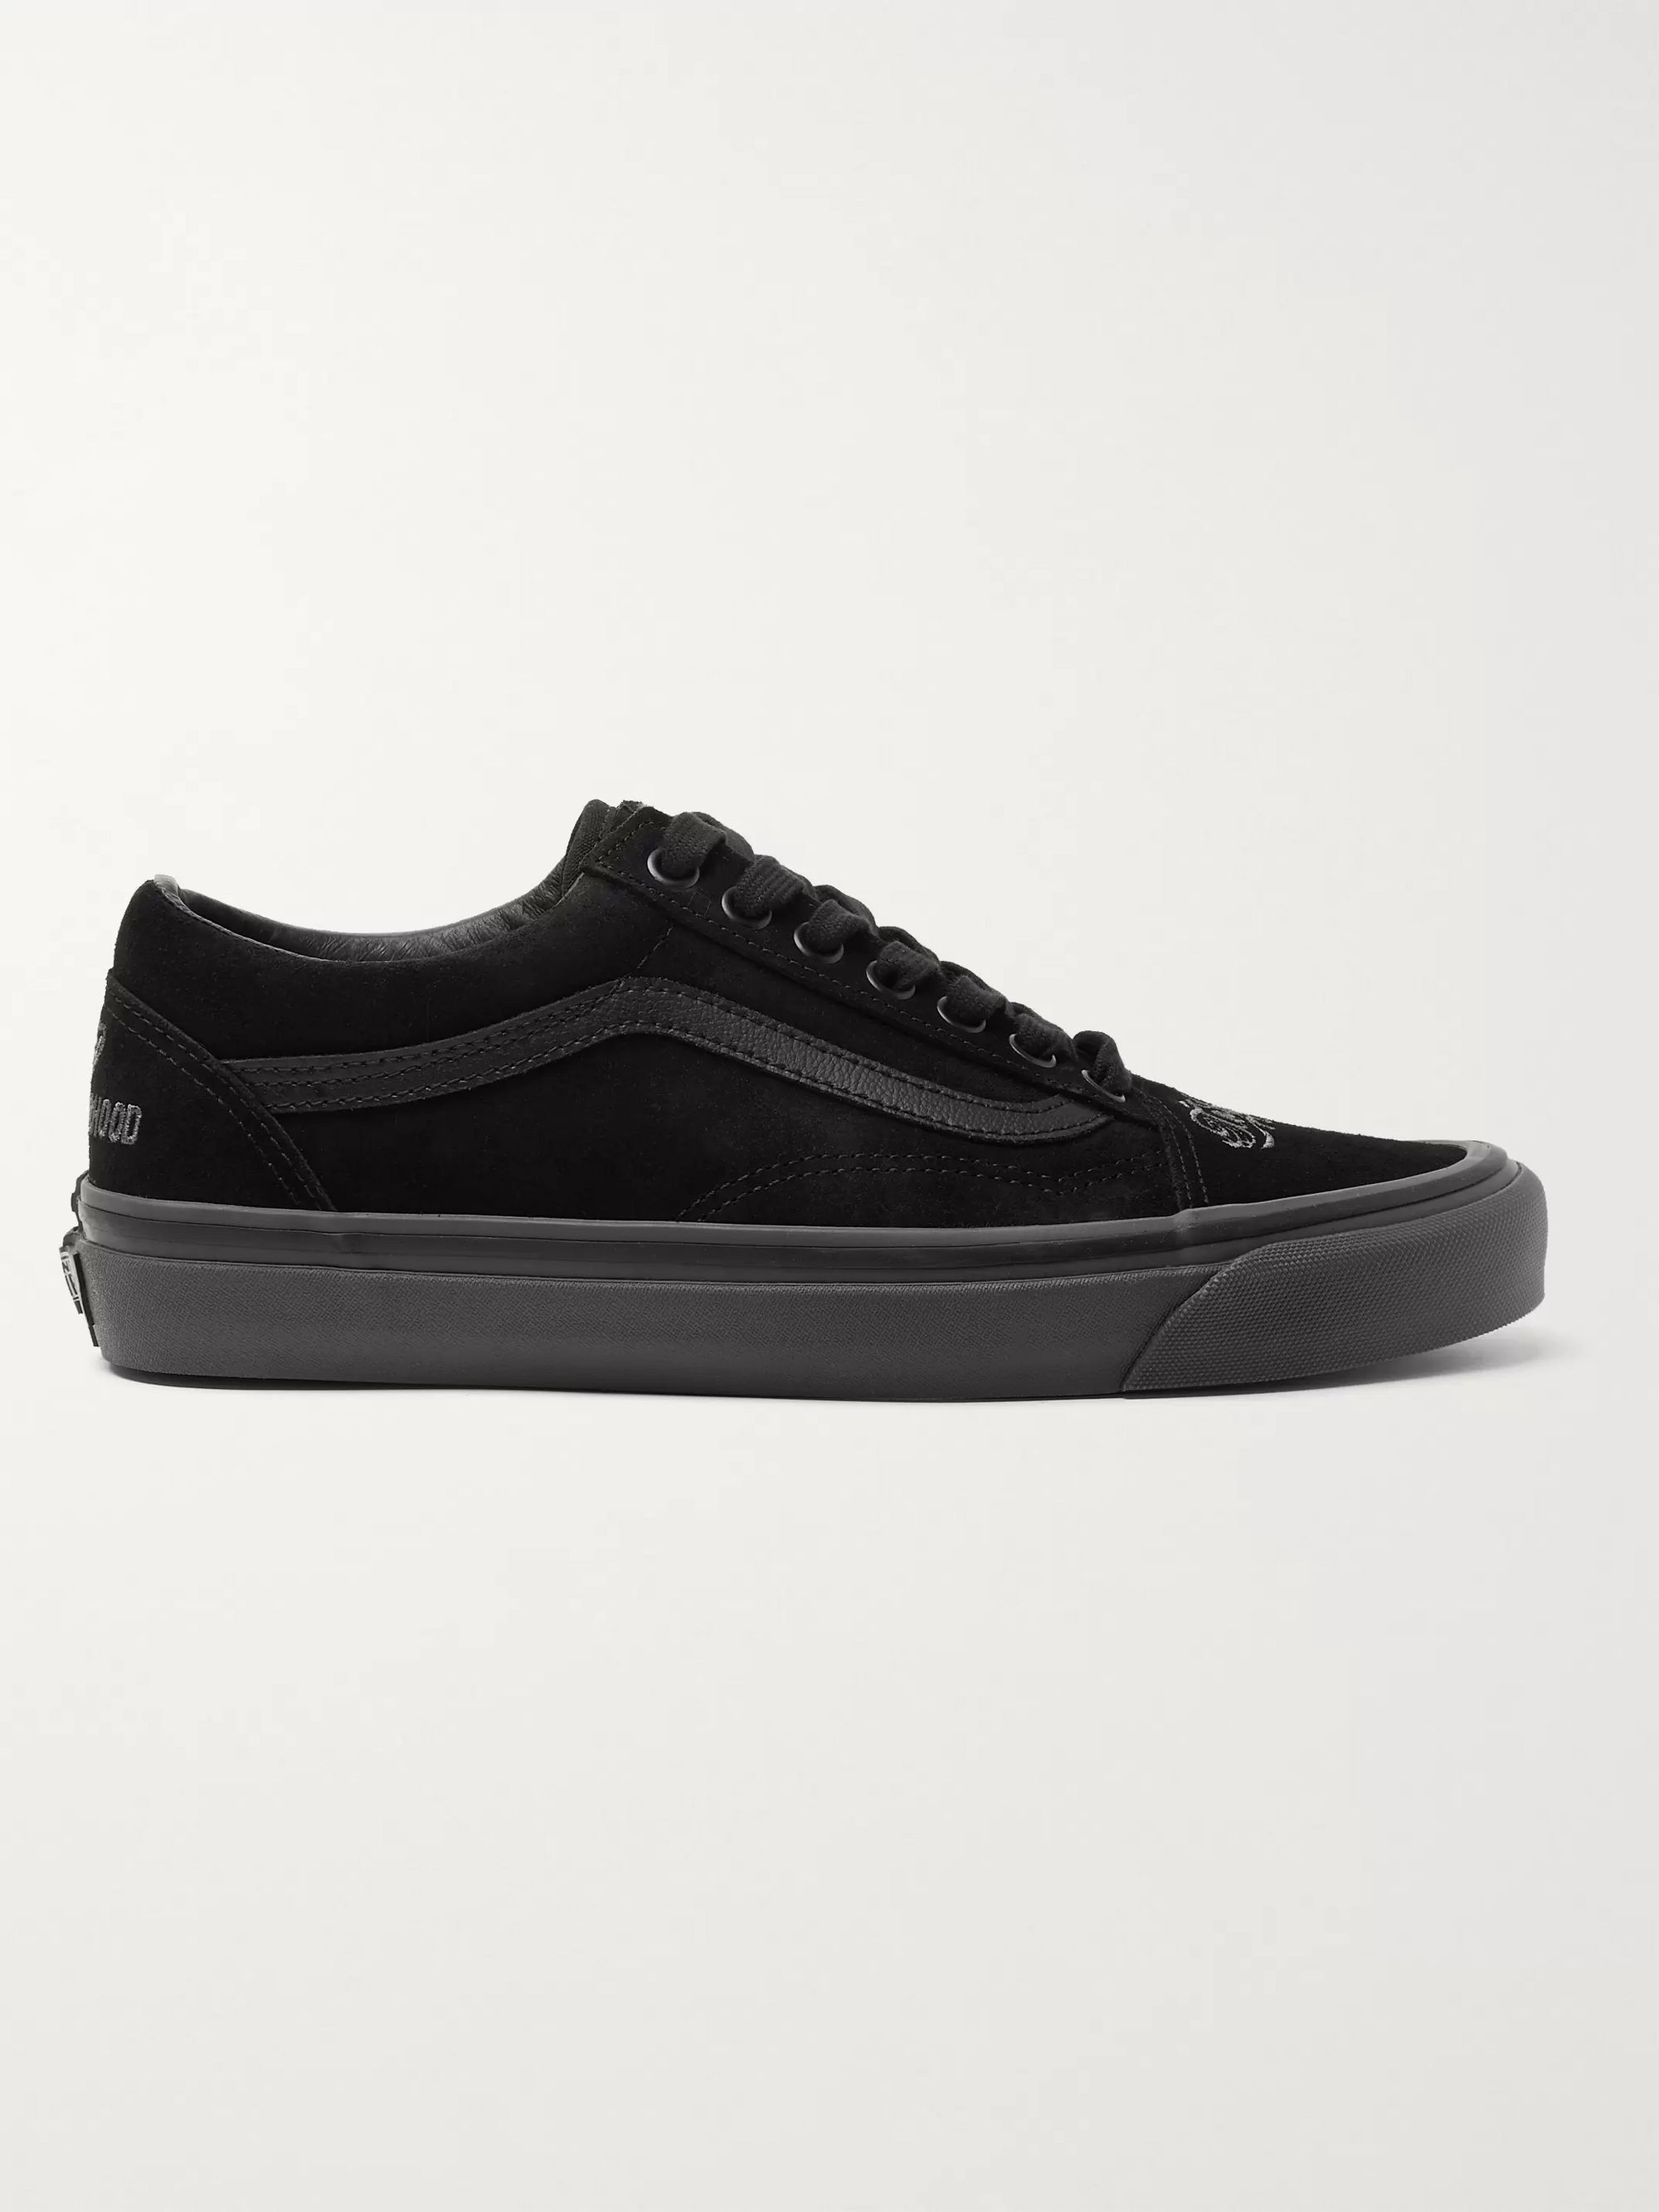 Vans + Neighbourhood Old Skool 36 DX Leather-Trimmed Suede Sneakers